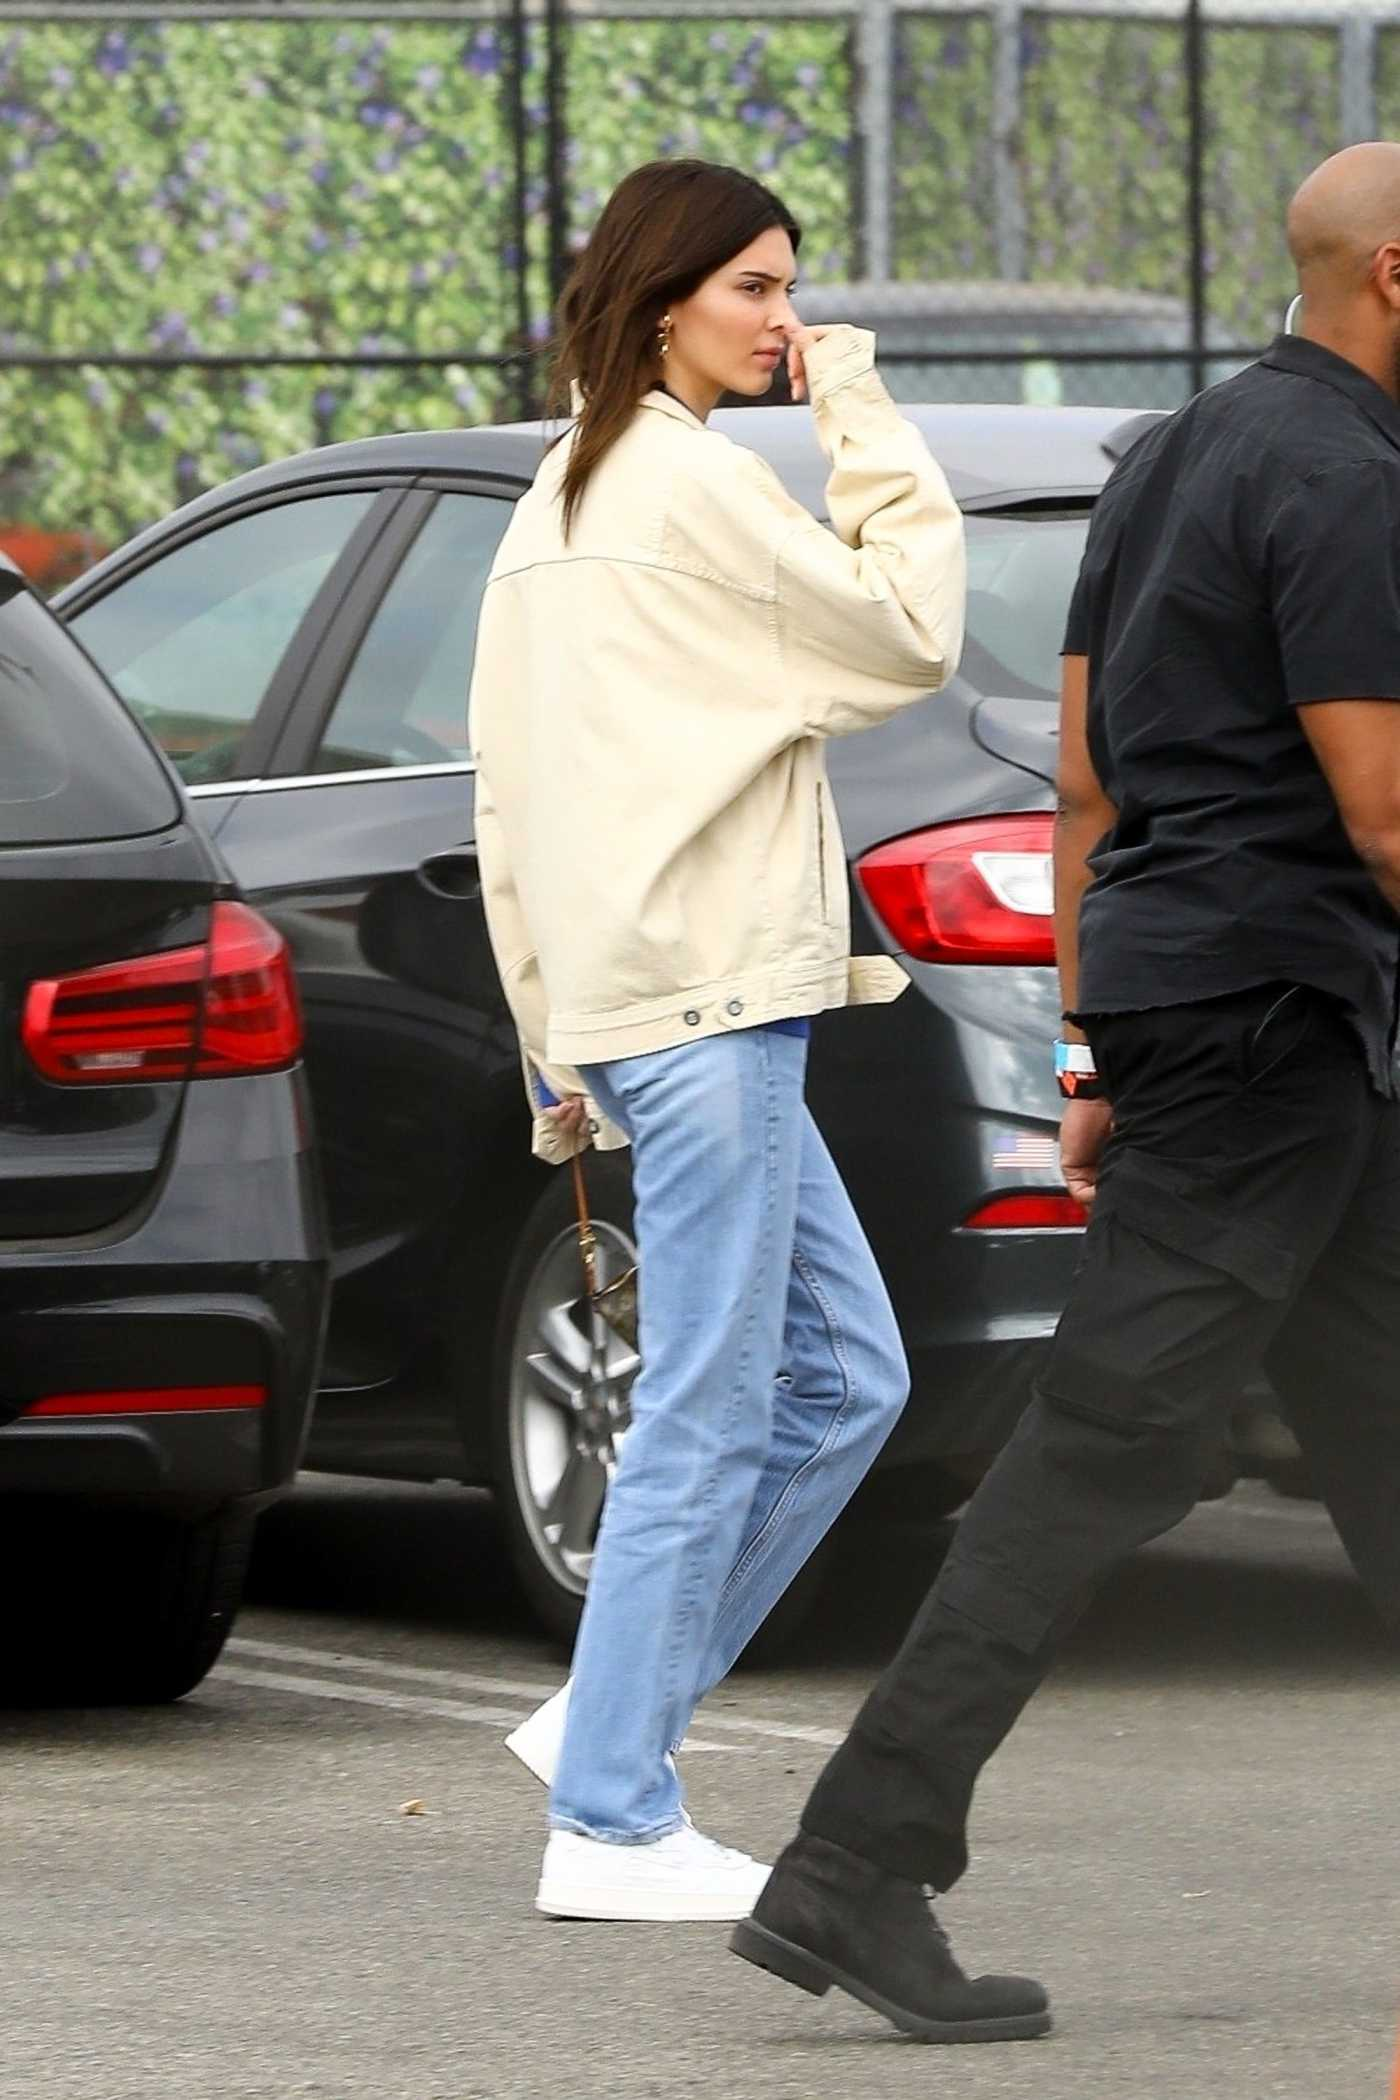 Kendall Jenner in a Beige Jacket Leaves Kanye West's Sunday Service in Inglewood 10/27/2019